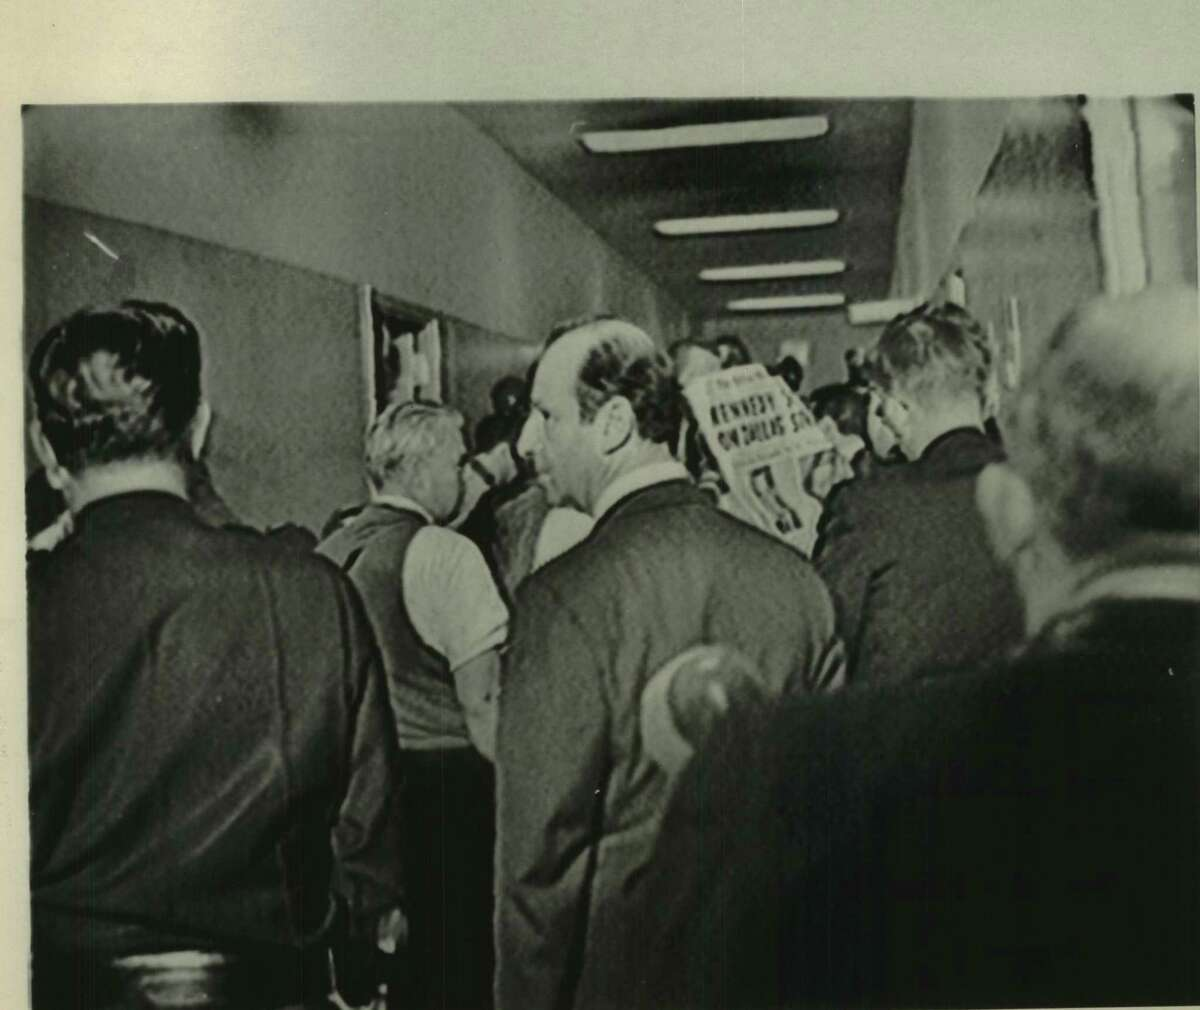 """Jack Ruby, profiled man in foreground, is seen in crowded corridor at Dallas police headquarters on the night of November 22, 1963, the date on which President Kennedy was assassinated. Two days later, Sunday, November 24, Ruby again was in Dallas police headquarters at which time he shot and killed Lee Harvey Oswald, Kennedy's accused assassin. This picture was taken from unused movie film during preparation of the CBS program """"November 22 and the Warren Report"""""""